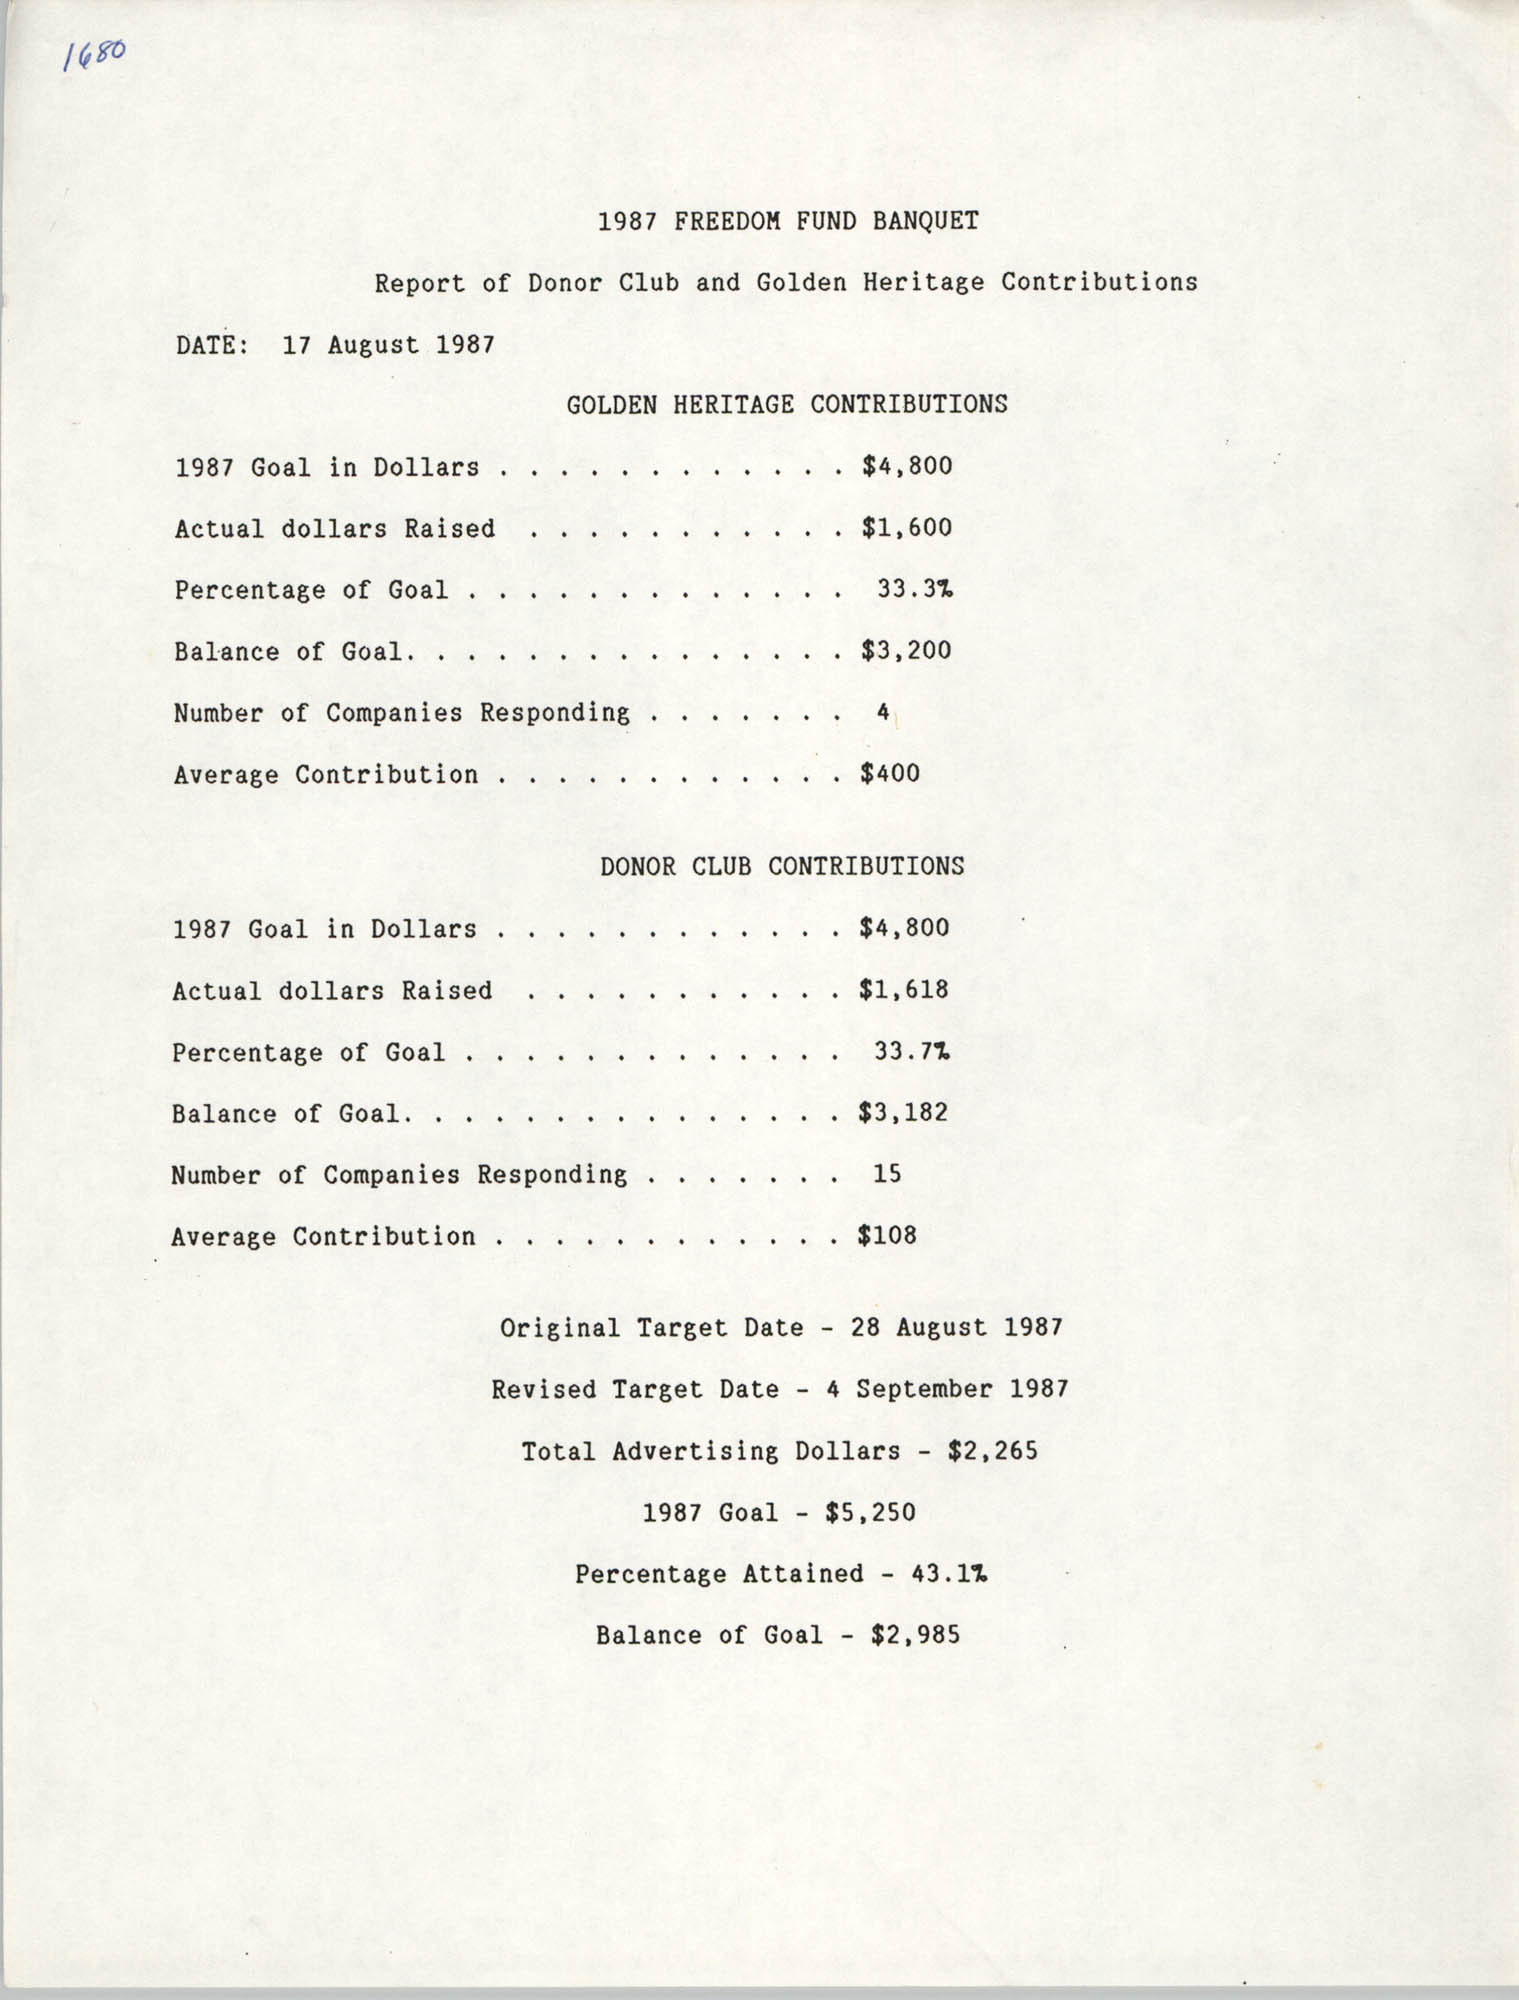 Report of Donor Club and Golden Heritage Contributions, 1987 Freedom Fund Banquet